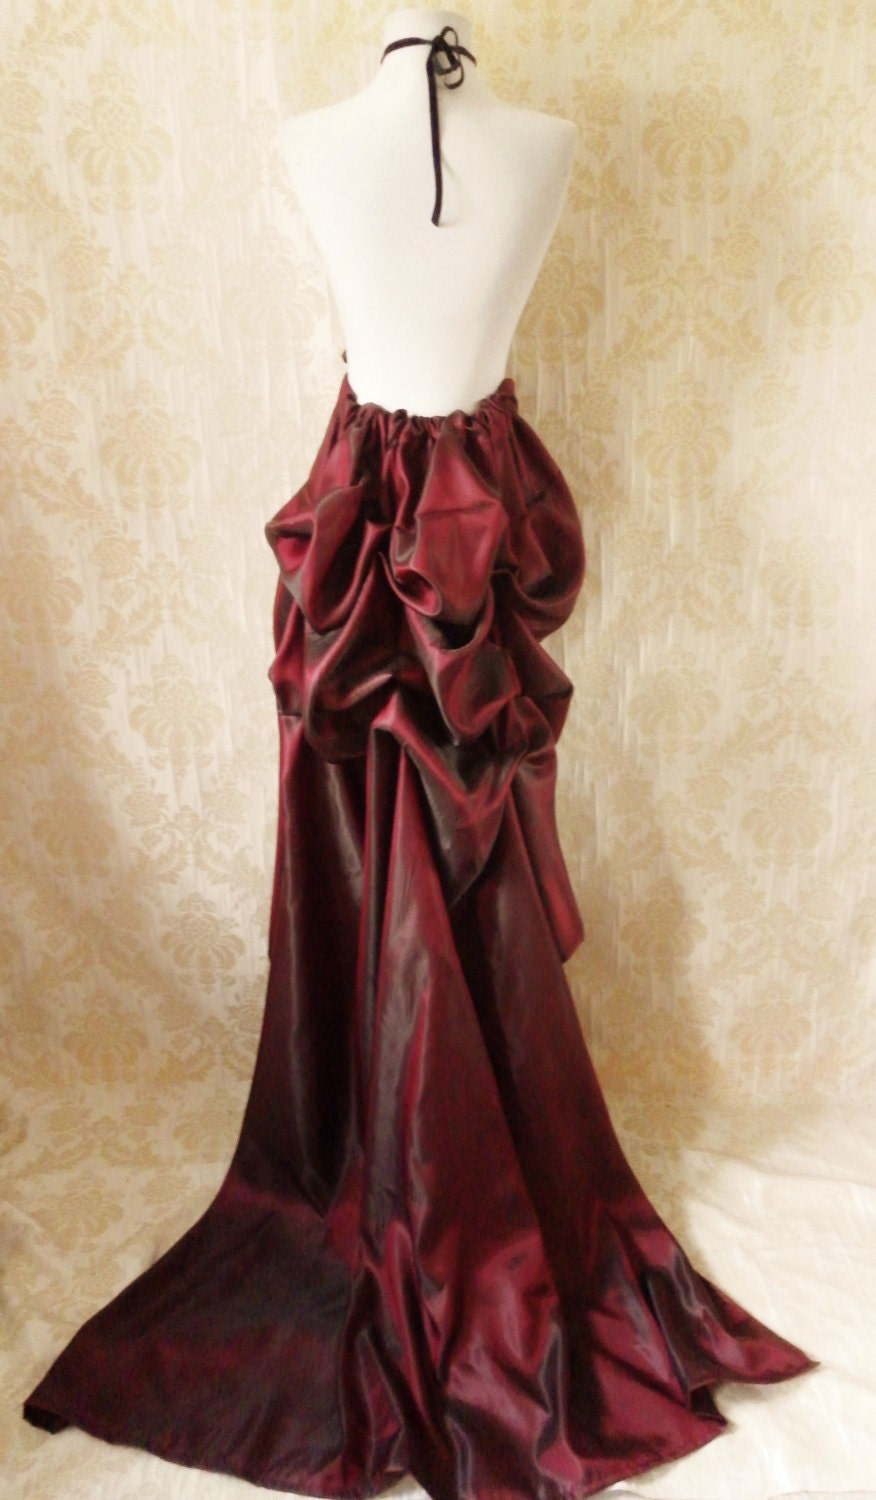 cabaret taffeta tie on bustle skirt one size fits